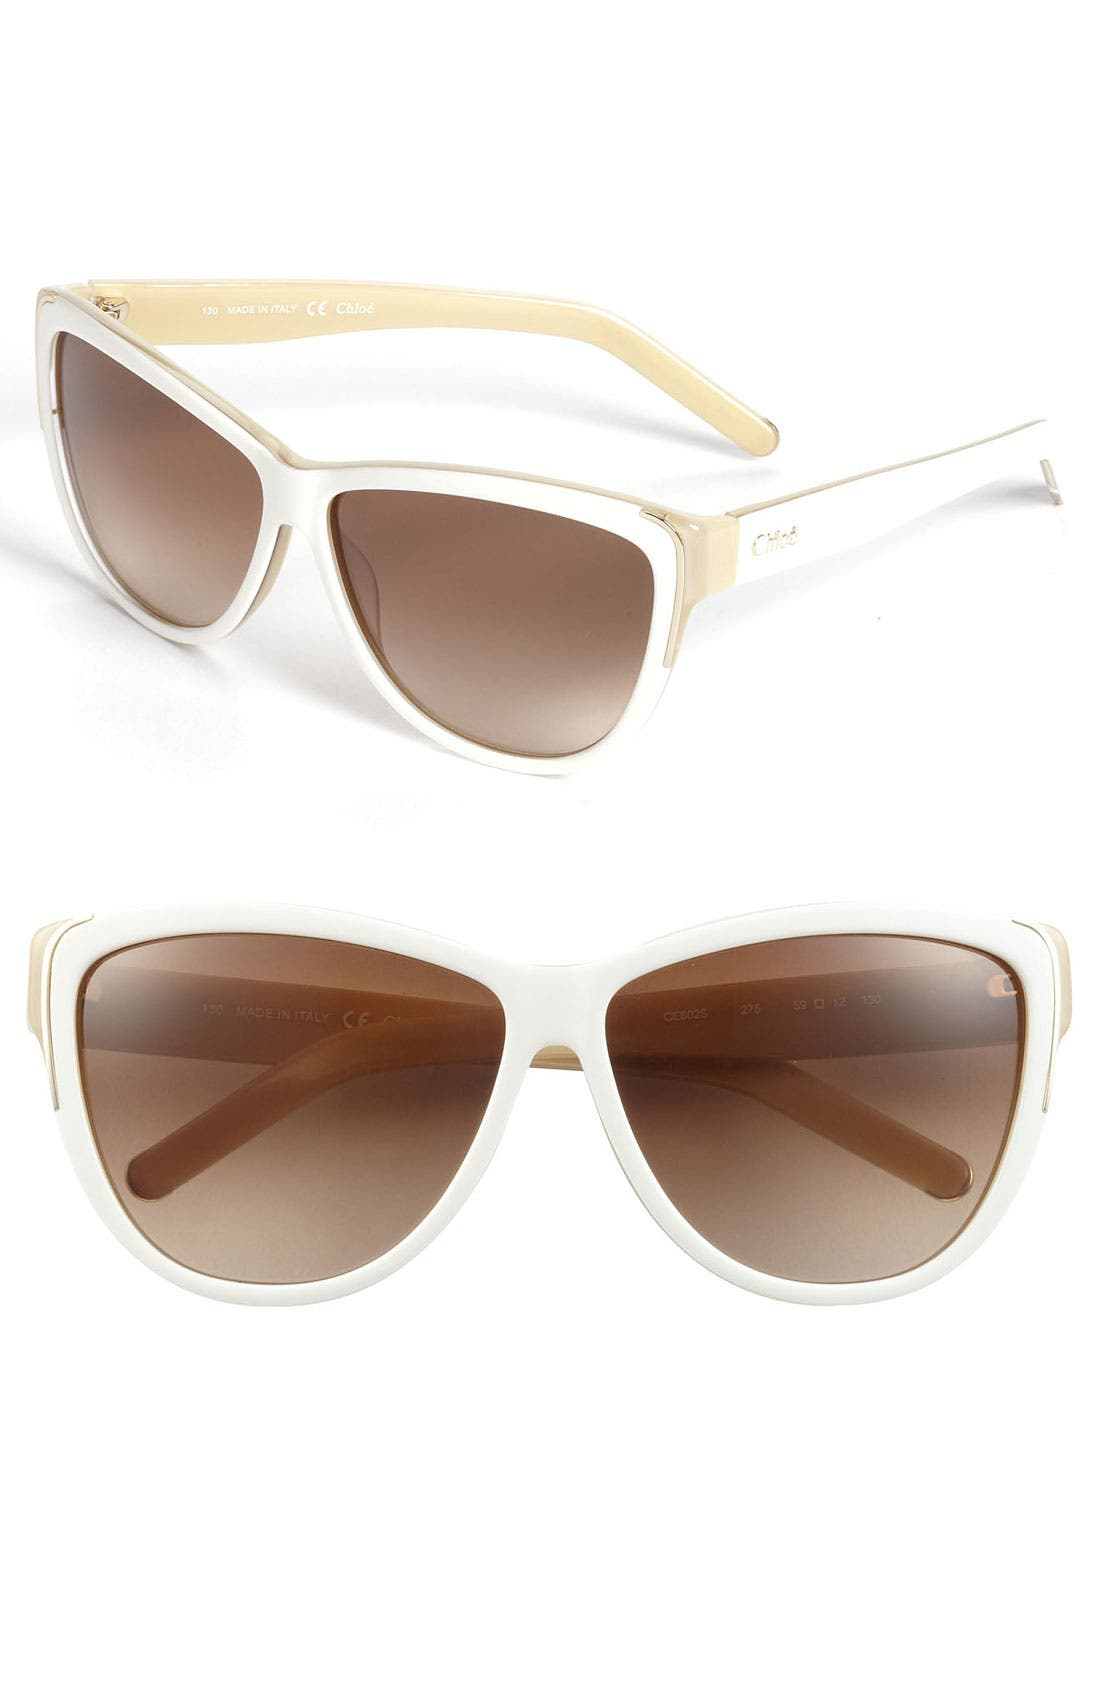 Alternate Image 1 Selected - Chloé 59mm Oversized Sunglasses